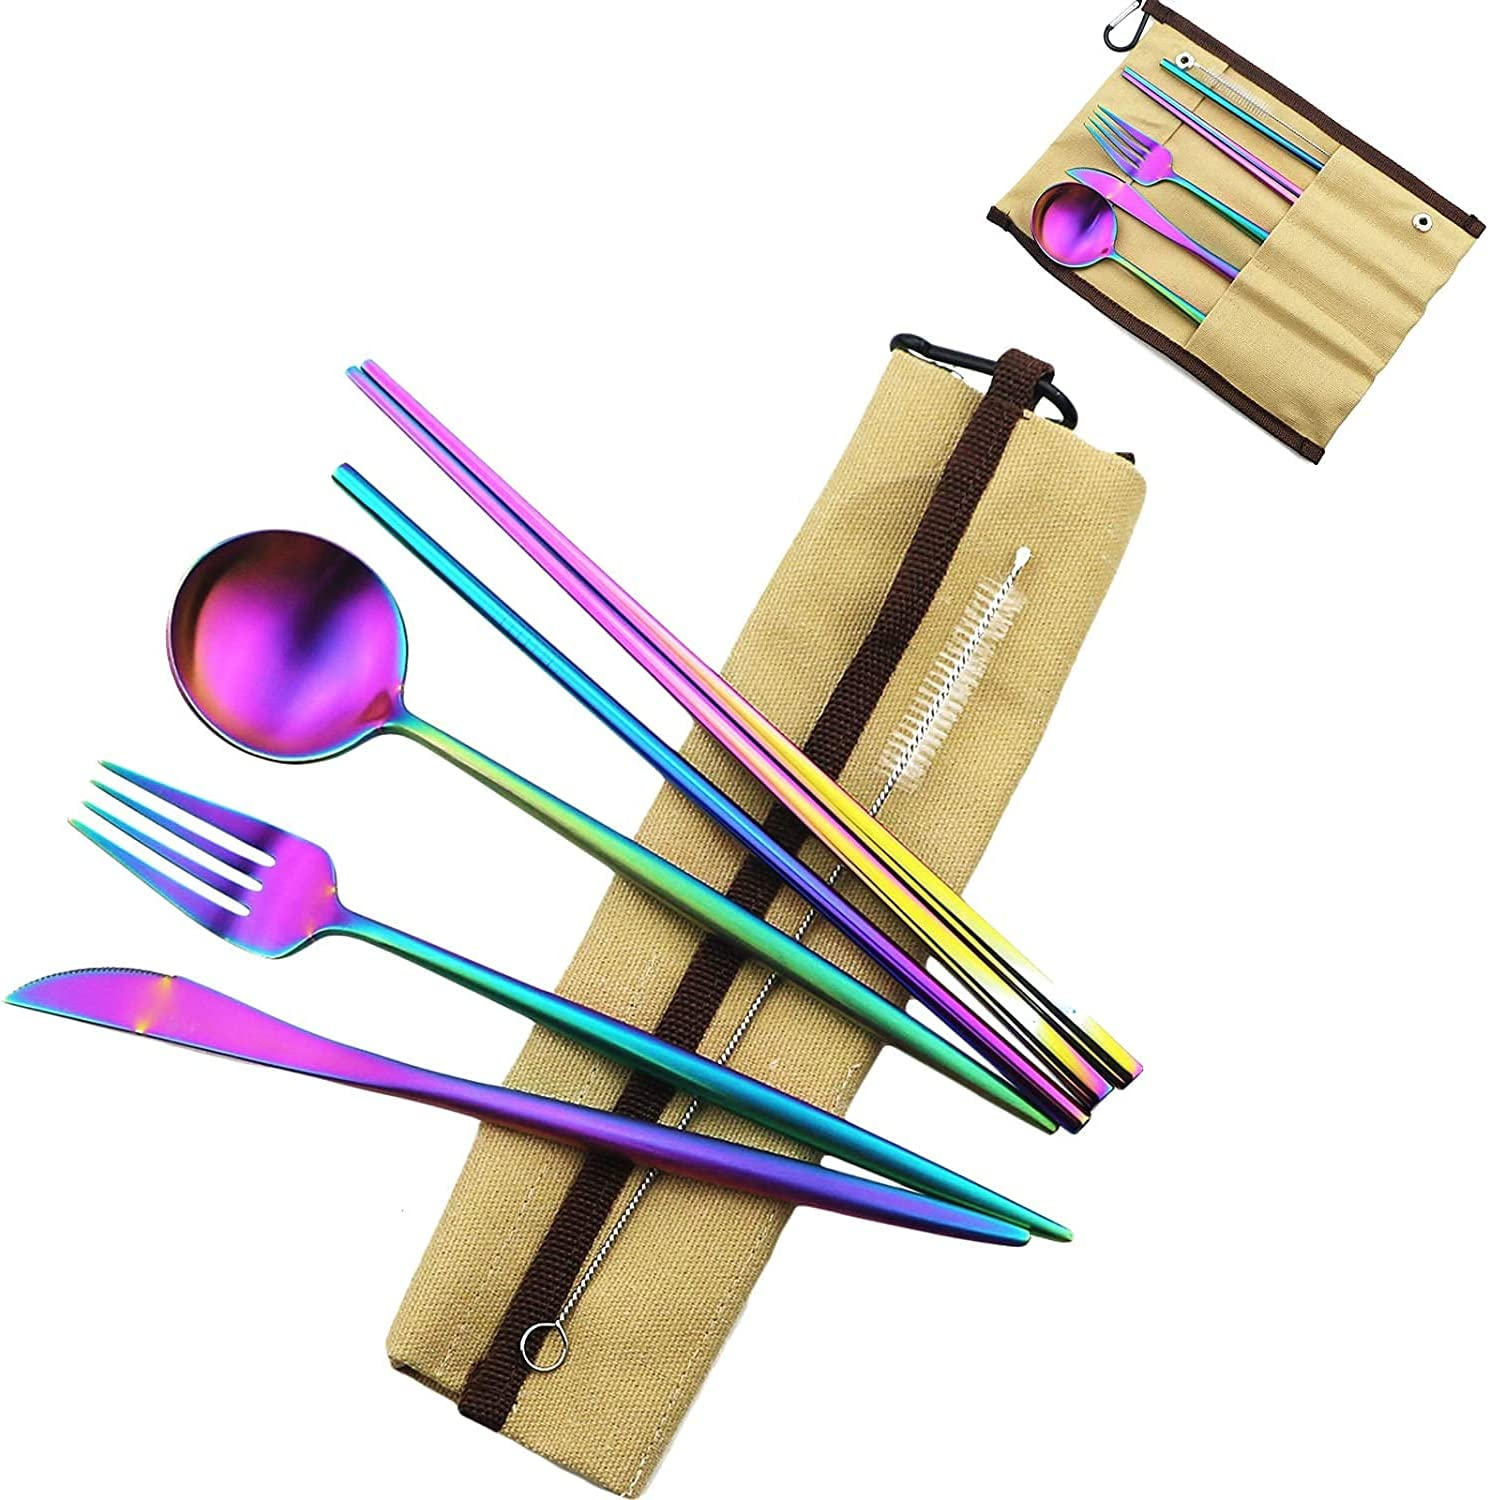 Large special price !! PjxTBd Eco-Friendly Matte Finish Virginia Beach Mall Flatware Pieces Sets Cutlery 7